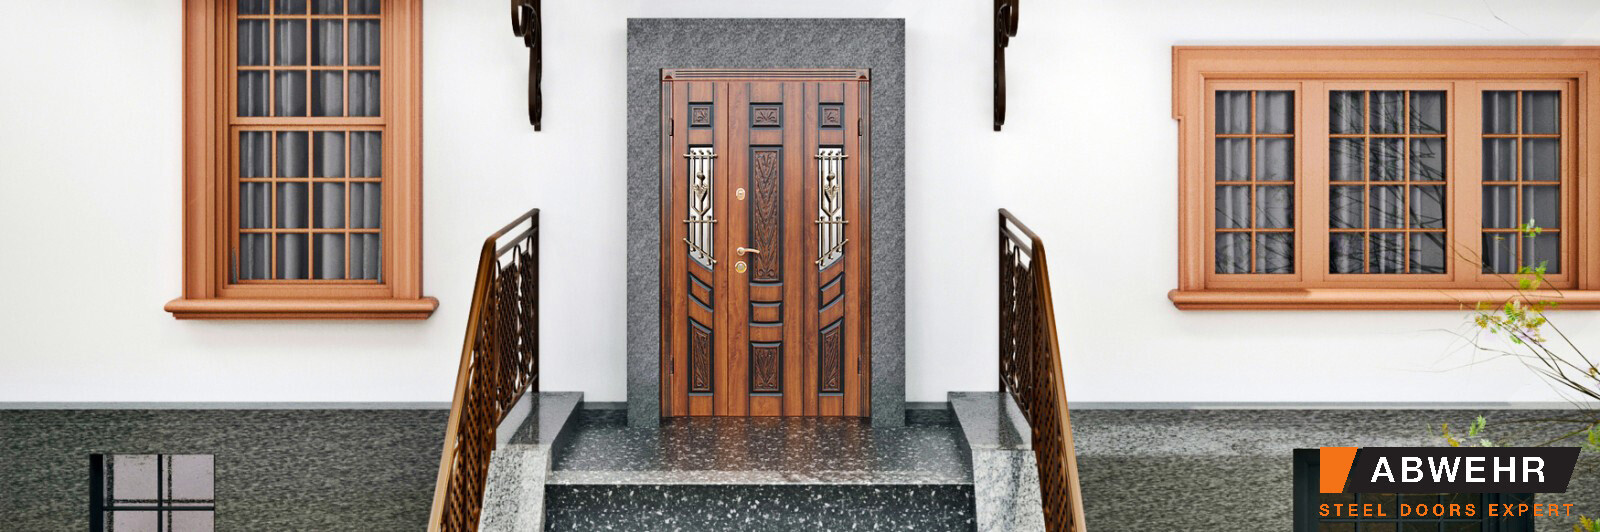 Abwehr Doors Agnia photo in the exterior